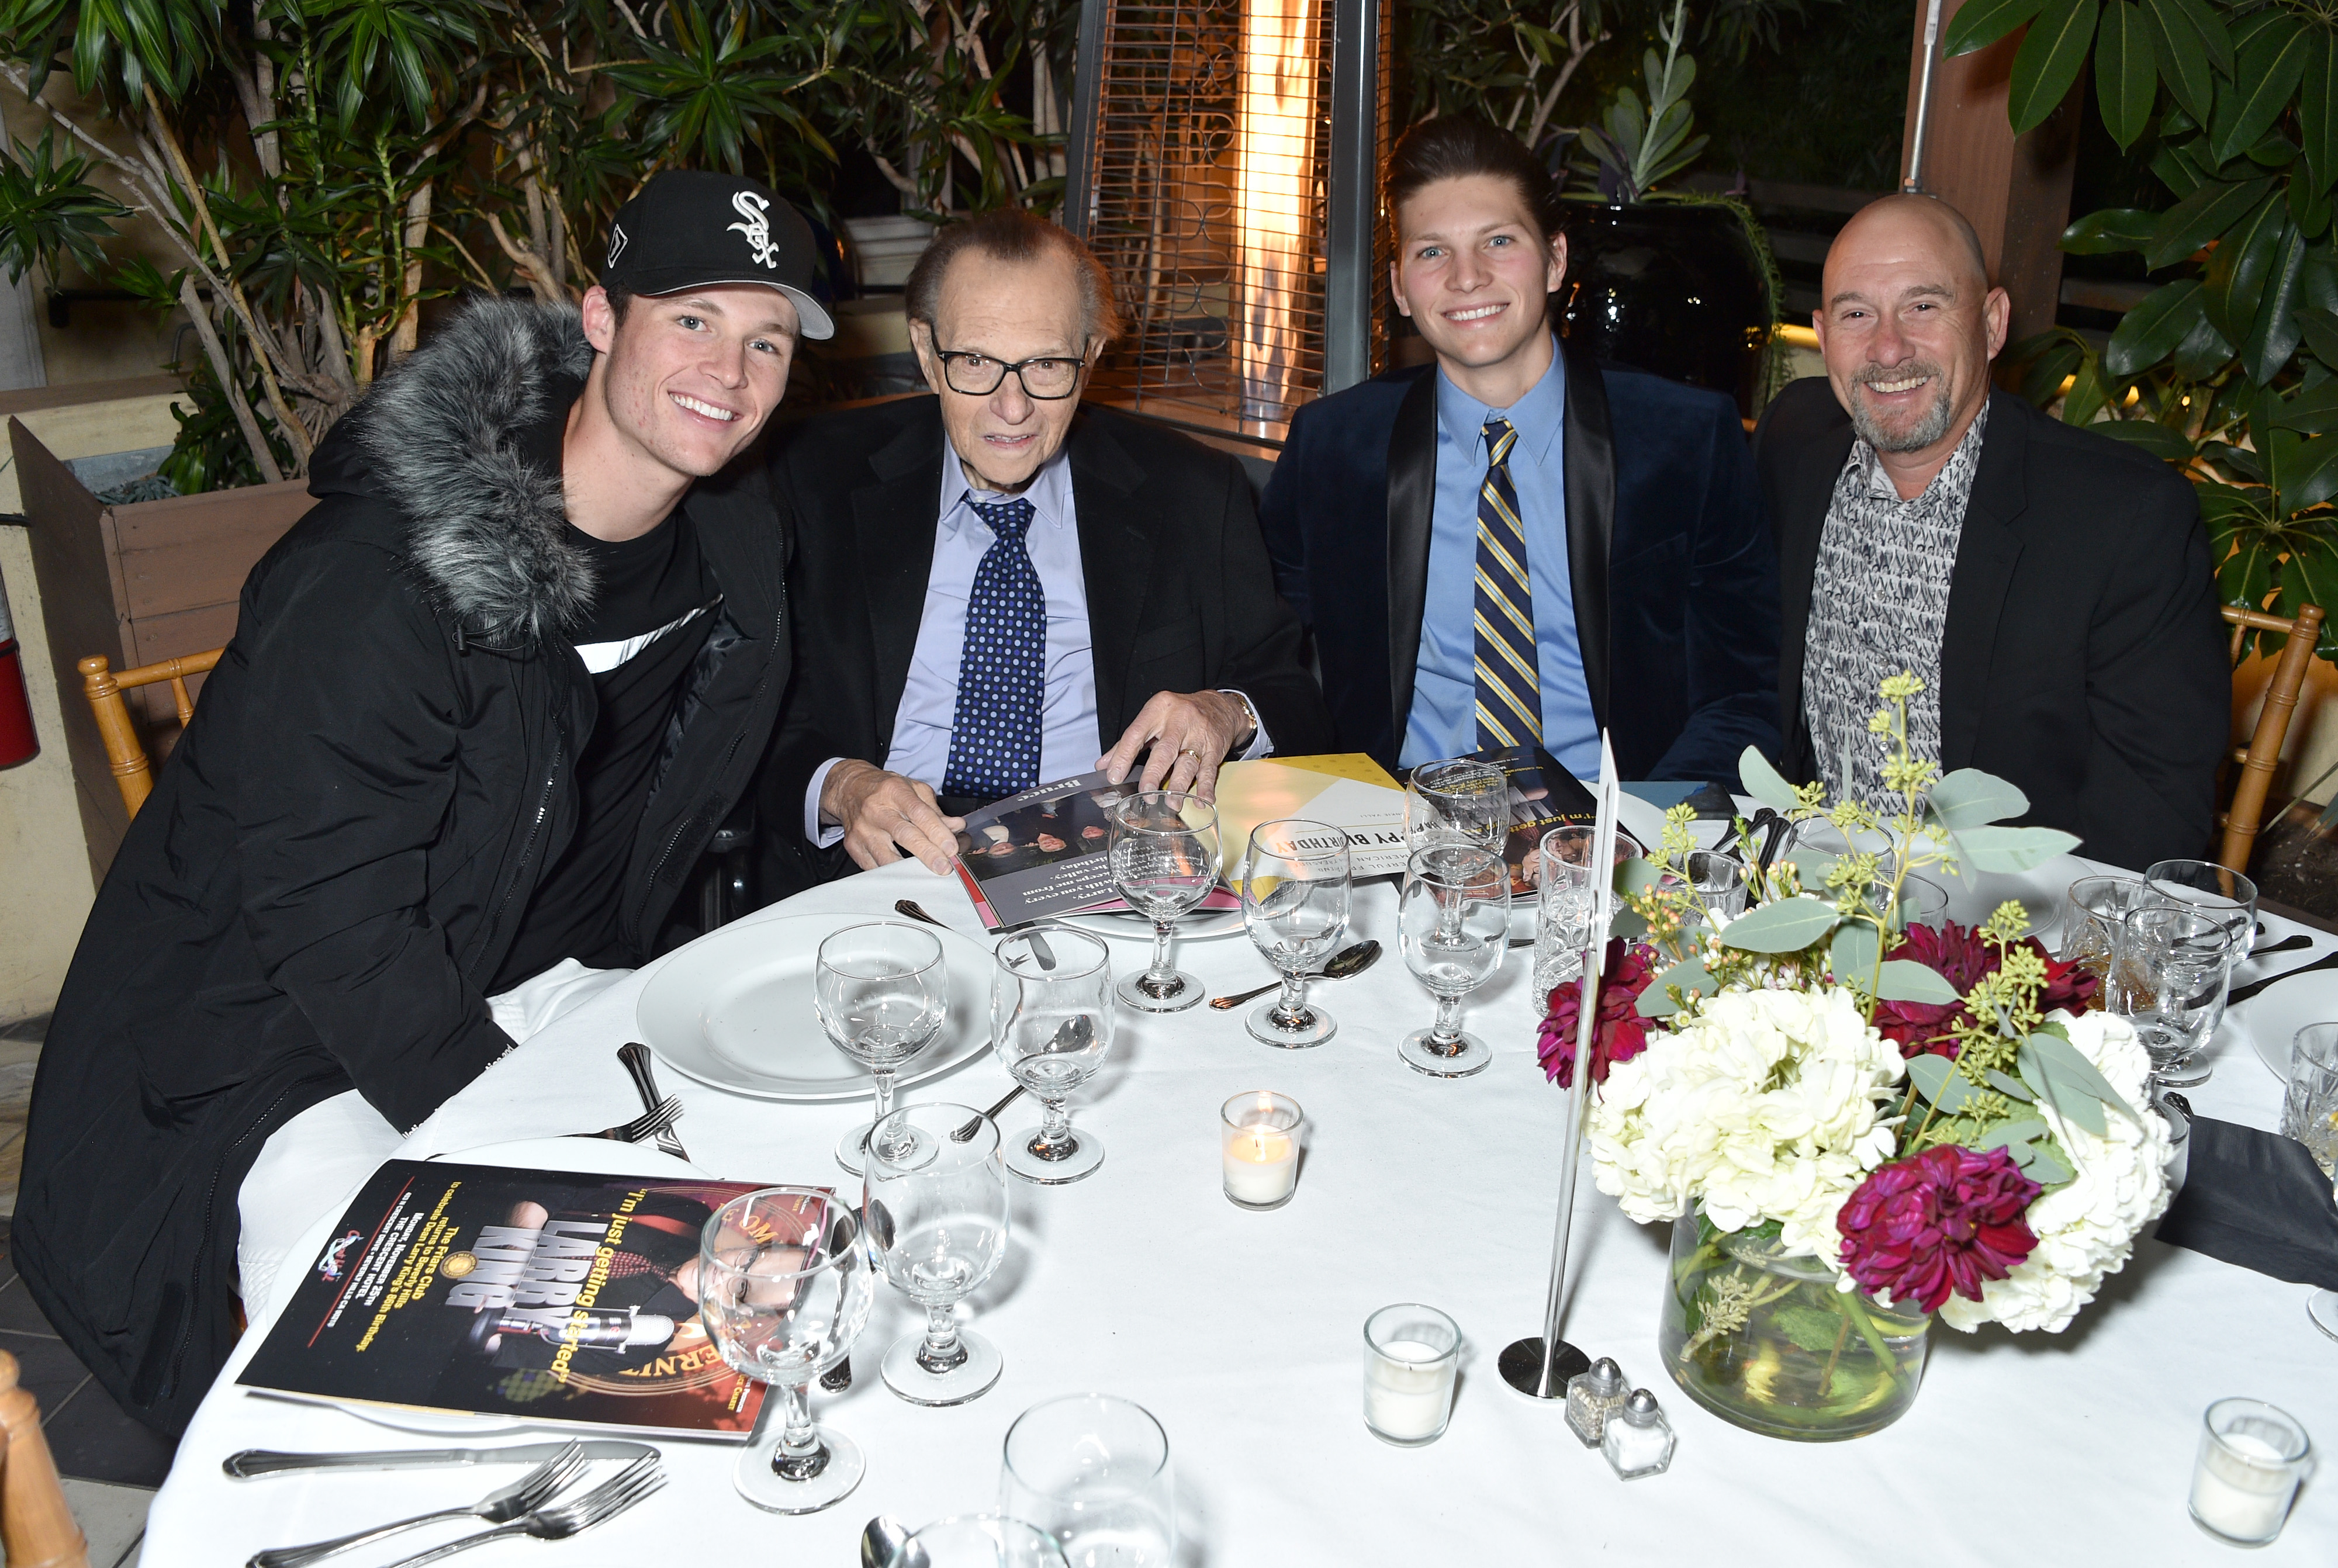 Cannon Edward King, Larry King, Chance Armstrong King and Larry King Jr. attend the Friars Club honors Larry King for his 86th birthday at The Crescent Hotel on November 25, 2019 in Beverly Hills, California.